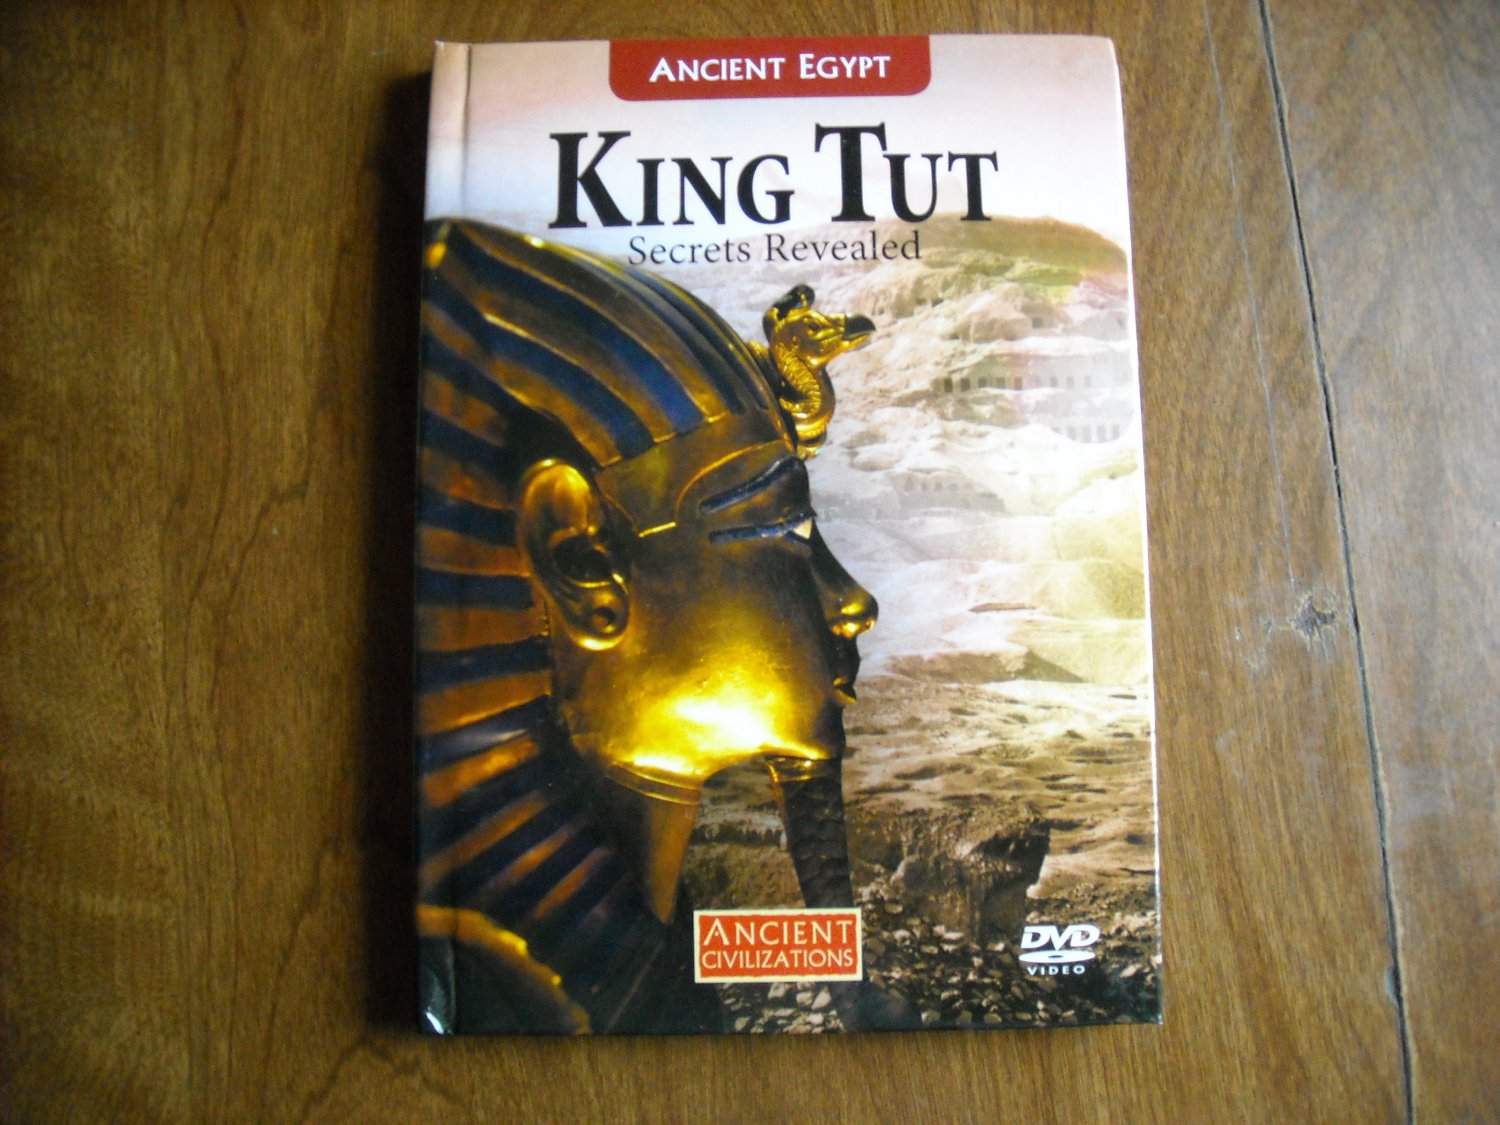 King Tut Secrets Revealed Ancient Civilizations 24 page booklet (2008) with DVD (2007)